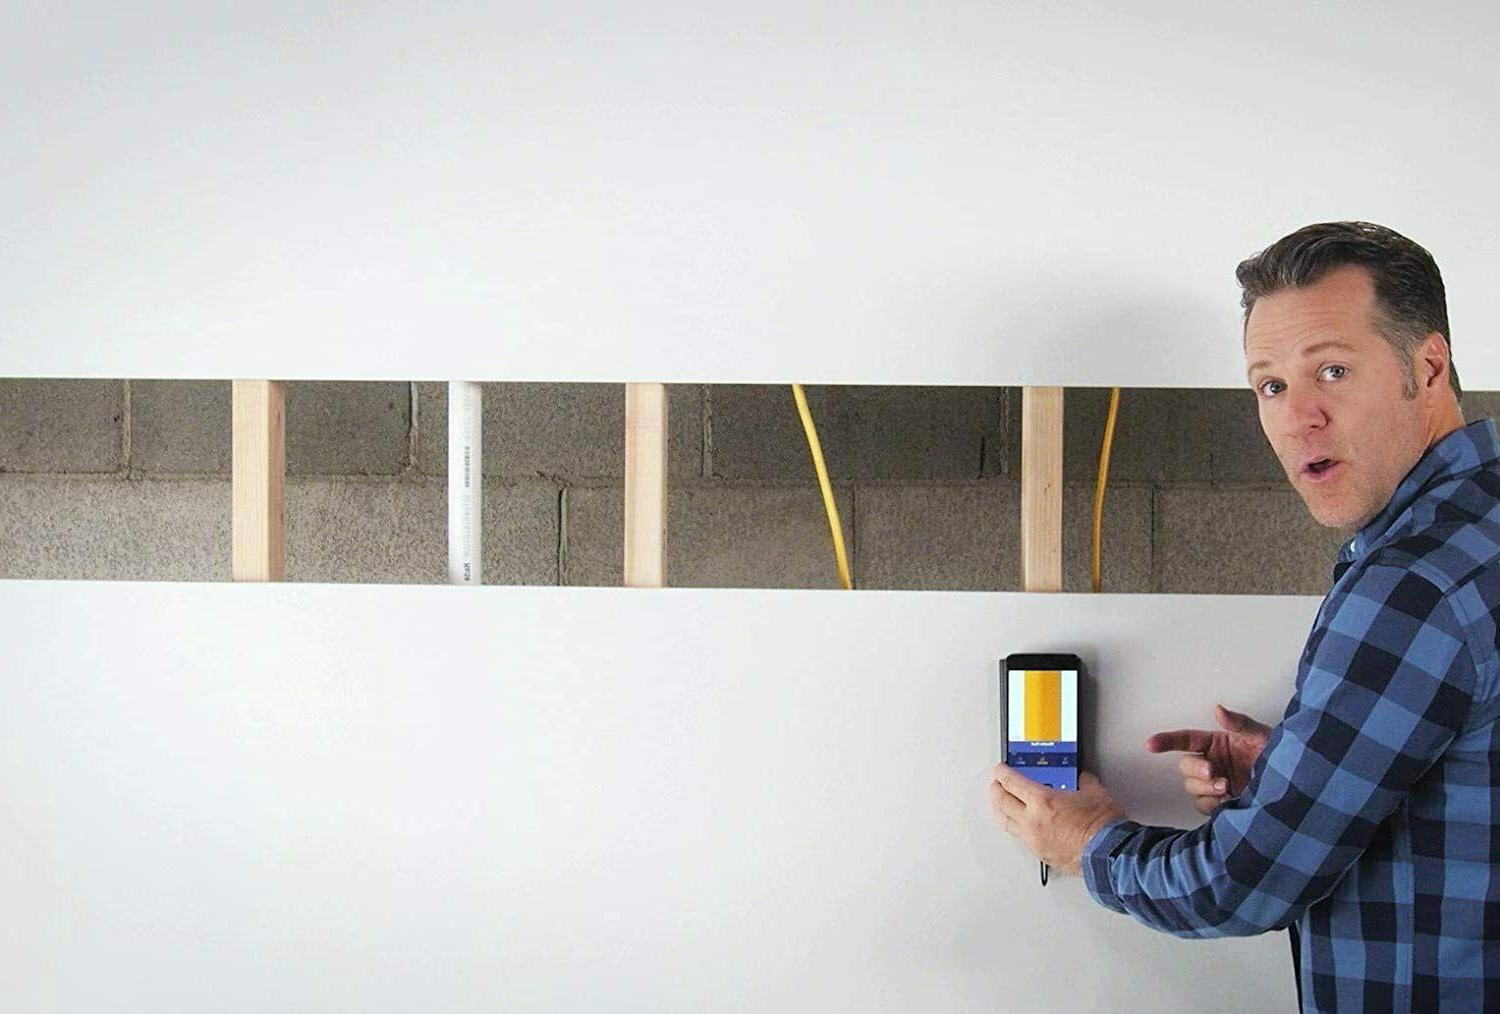 DIY, Stud In-Wall Imager, Wall Scanner for Studs, &